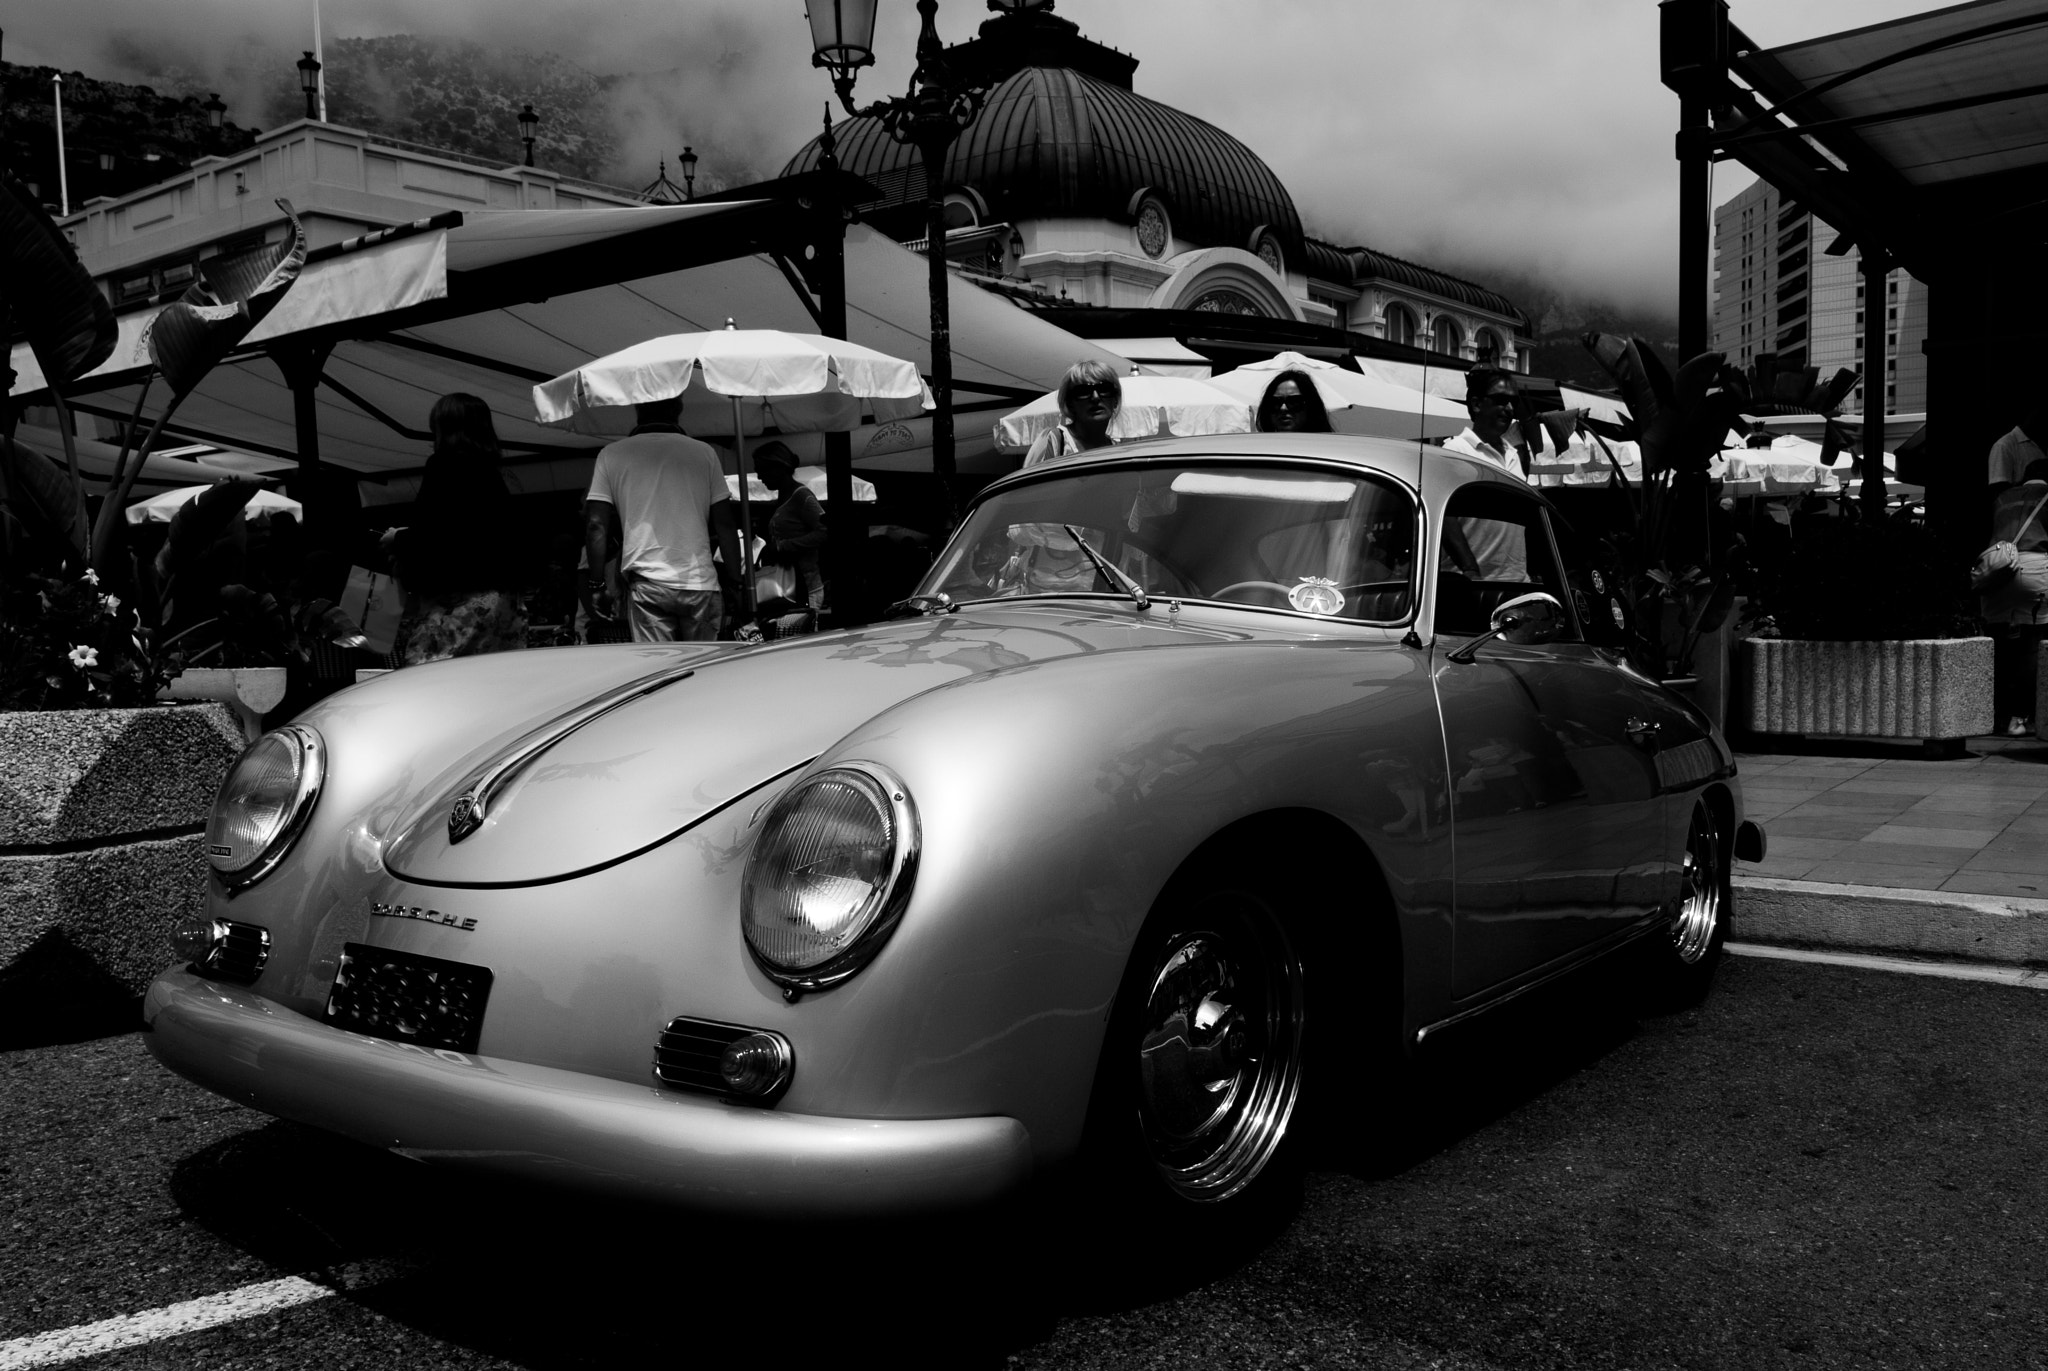 Photograph Porsche in Monaco by Alexander Männel on 500px